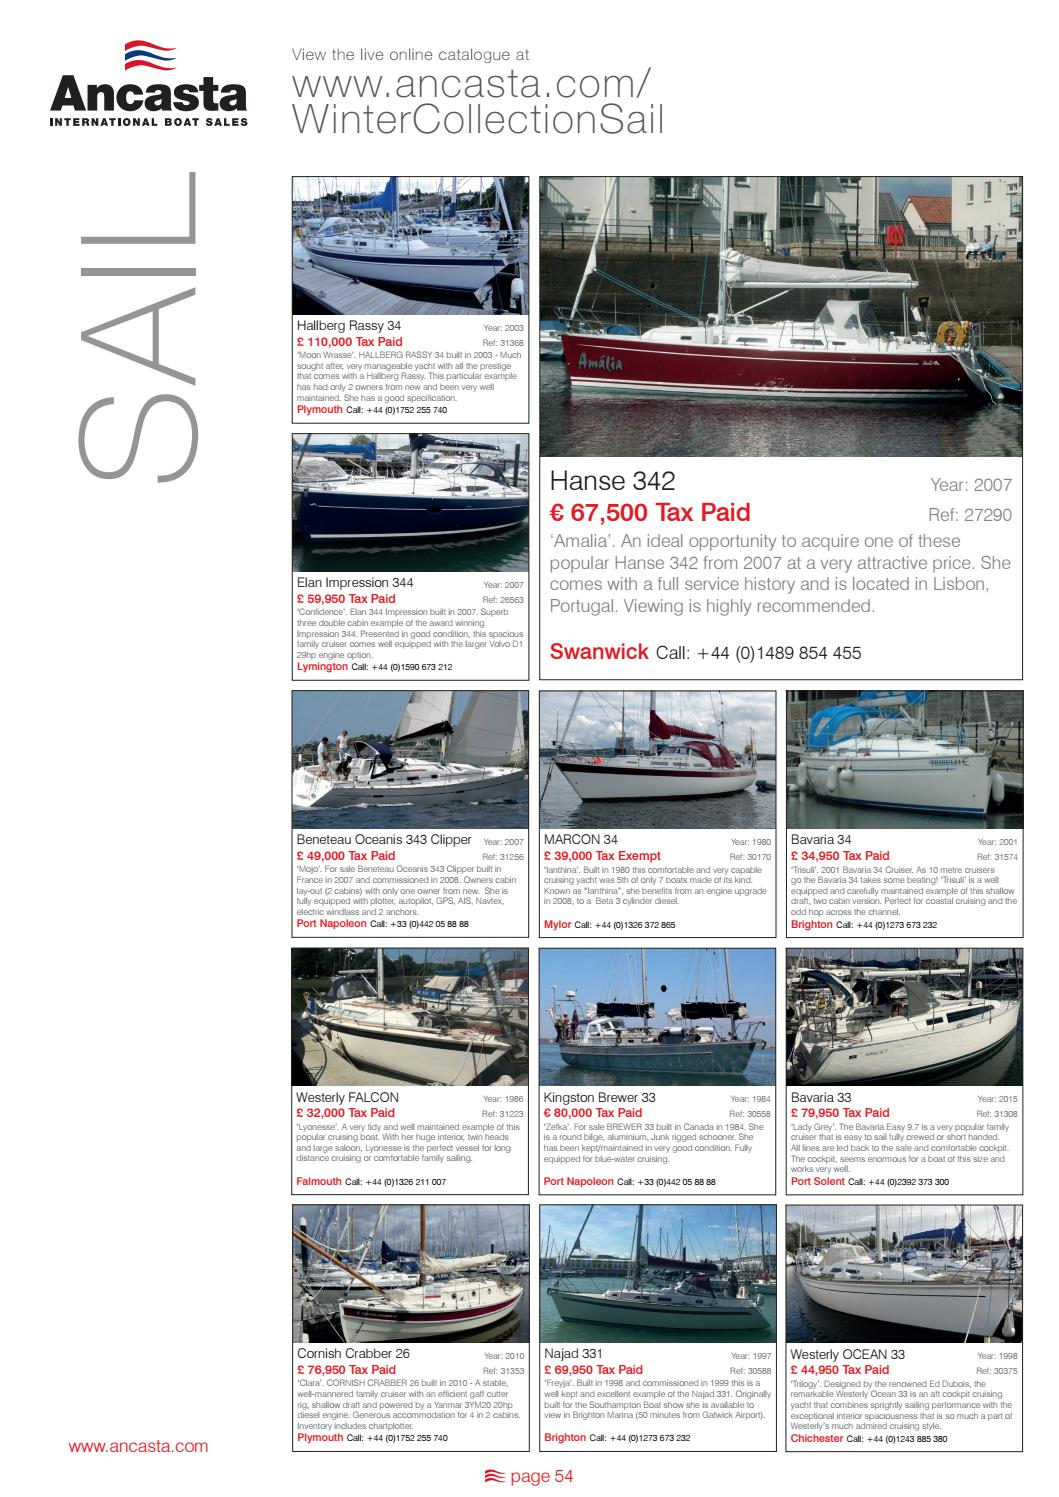 18 ancasta winter collection issuu by Ancasta International Boat